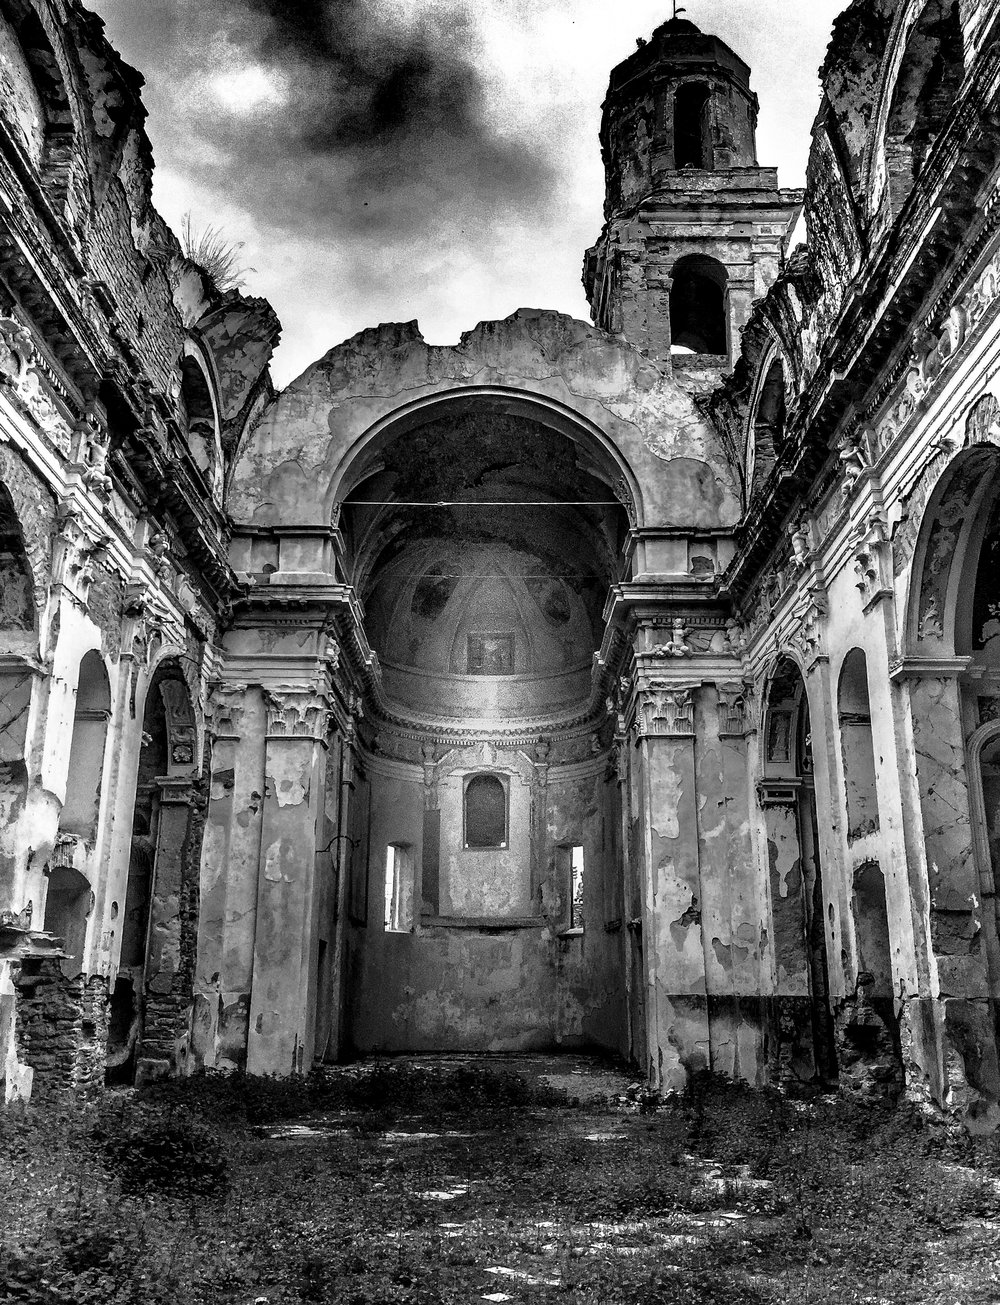 Destroyed Church in the province of Liguria, Italy. Refugees camp on the ground in this ruined church near the Italian-French border.